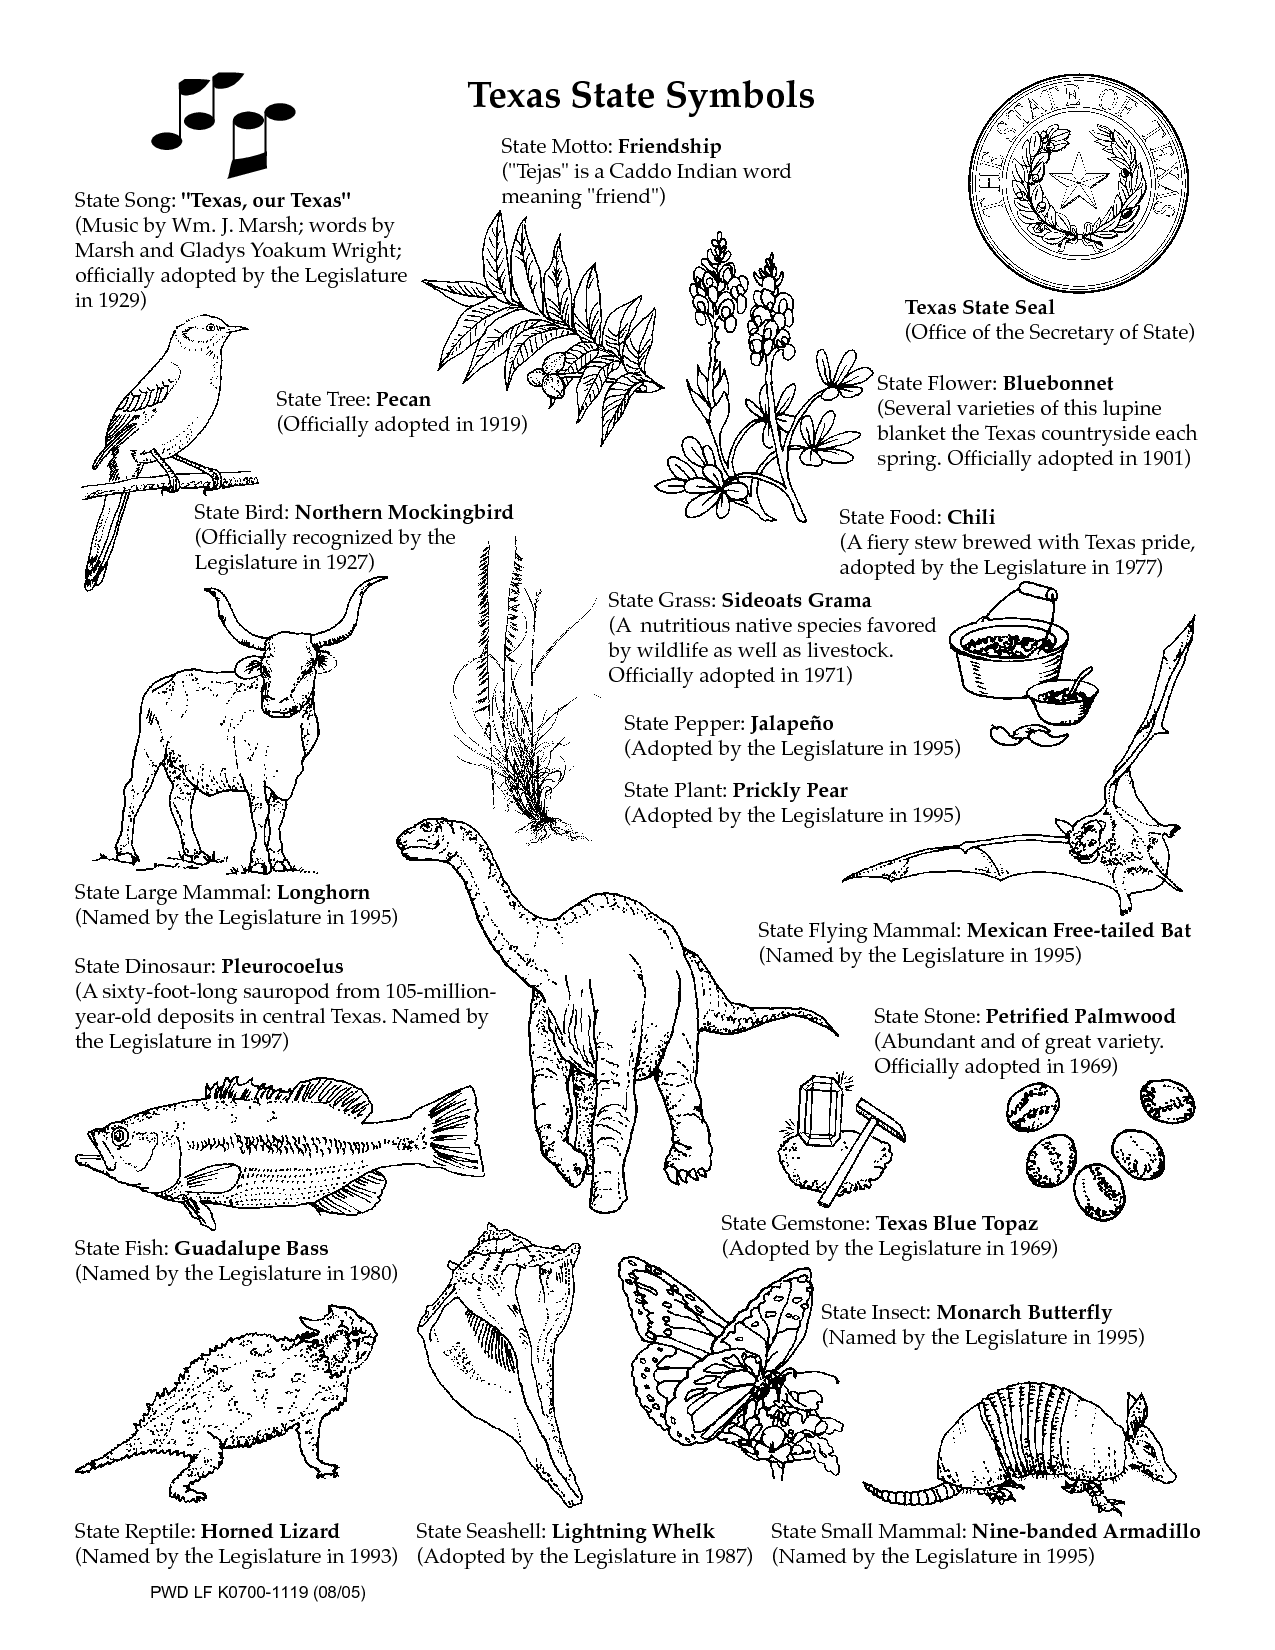 Texas Symbols Worksheets | Texas State Symbols Coloring Pages | 2015 ...